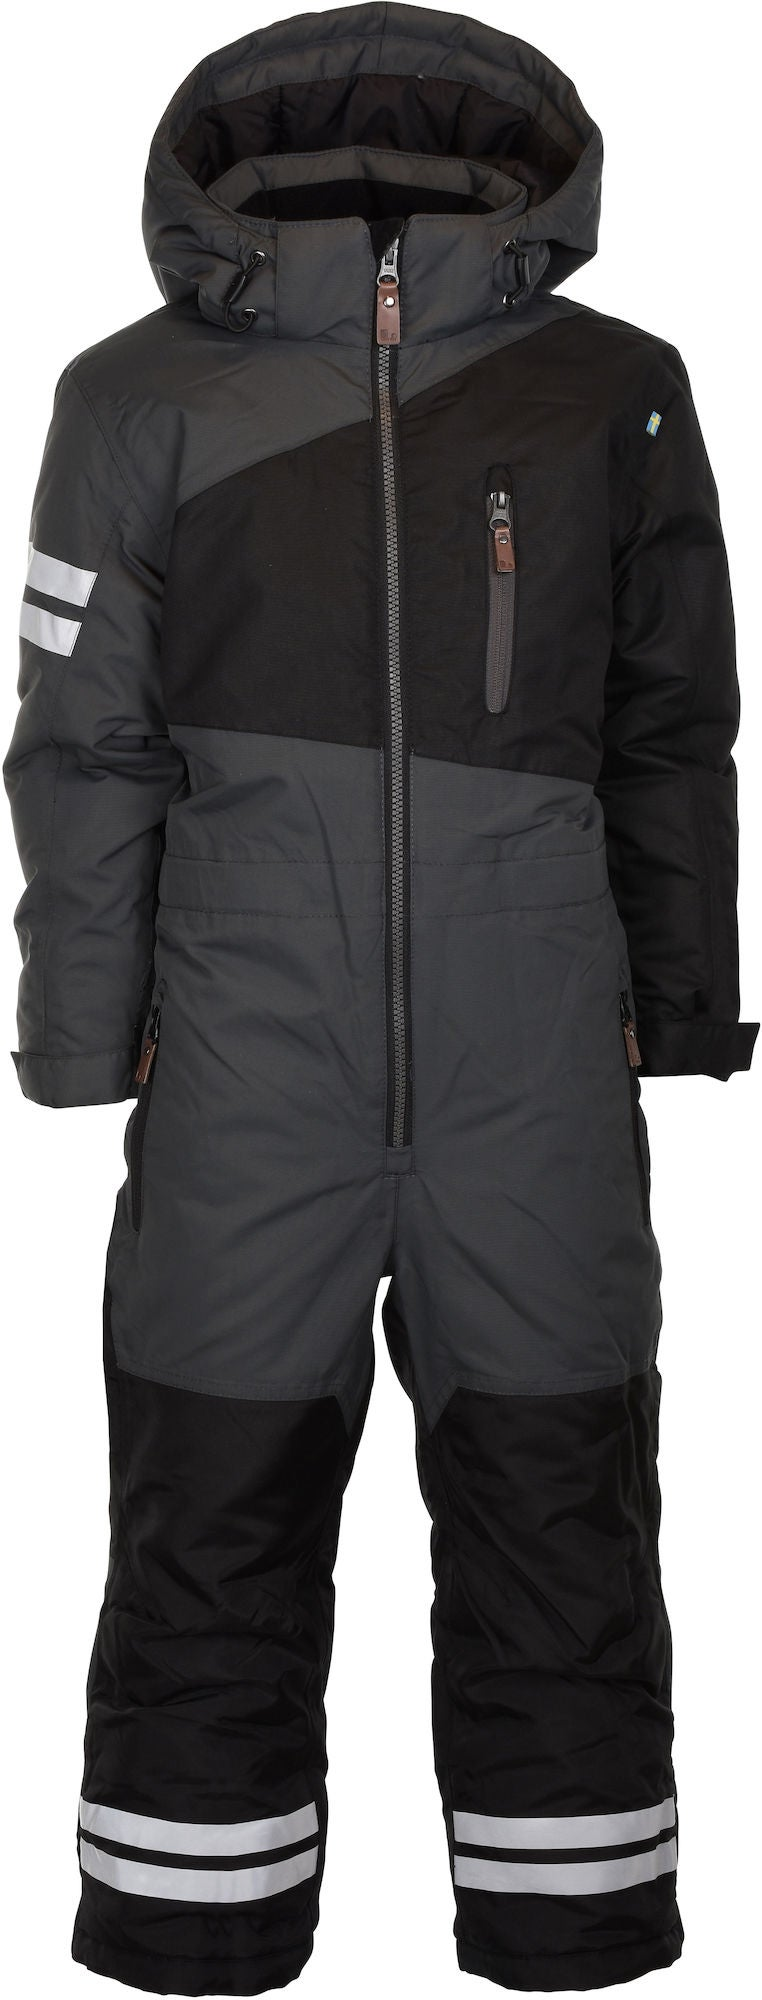 Lindberg Trysil Overall, Anthracite 80